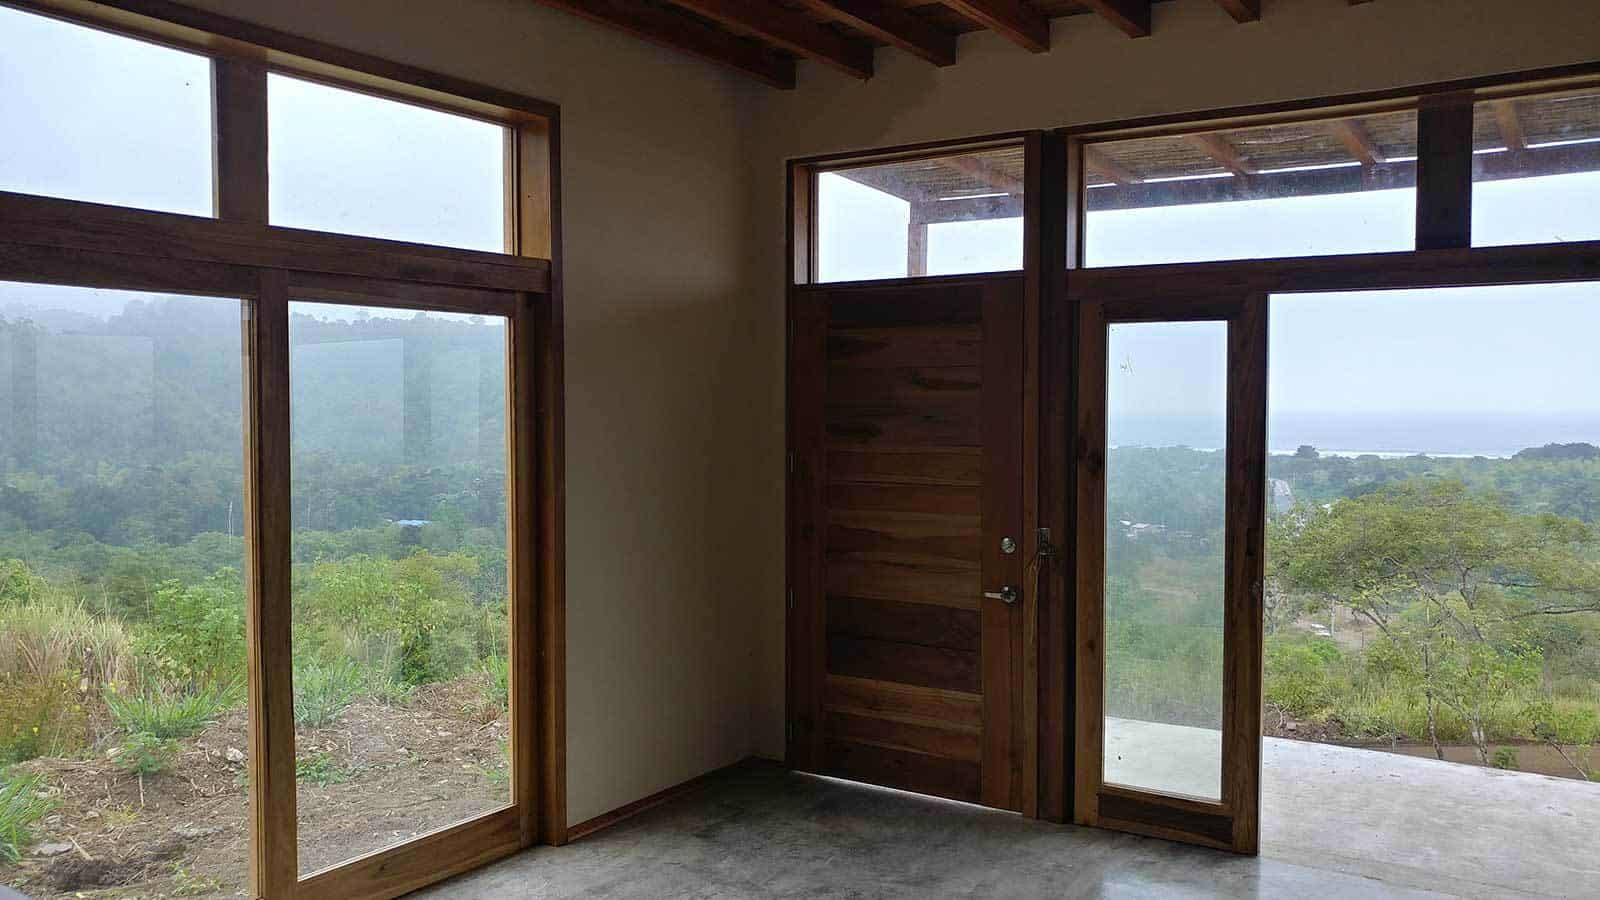 ayampe-ocean-view-house-downstairs-view-01--1600x900